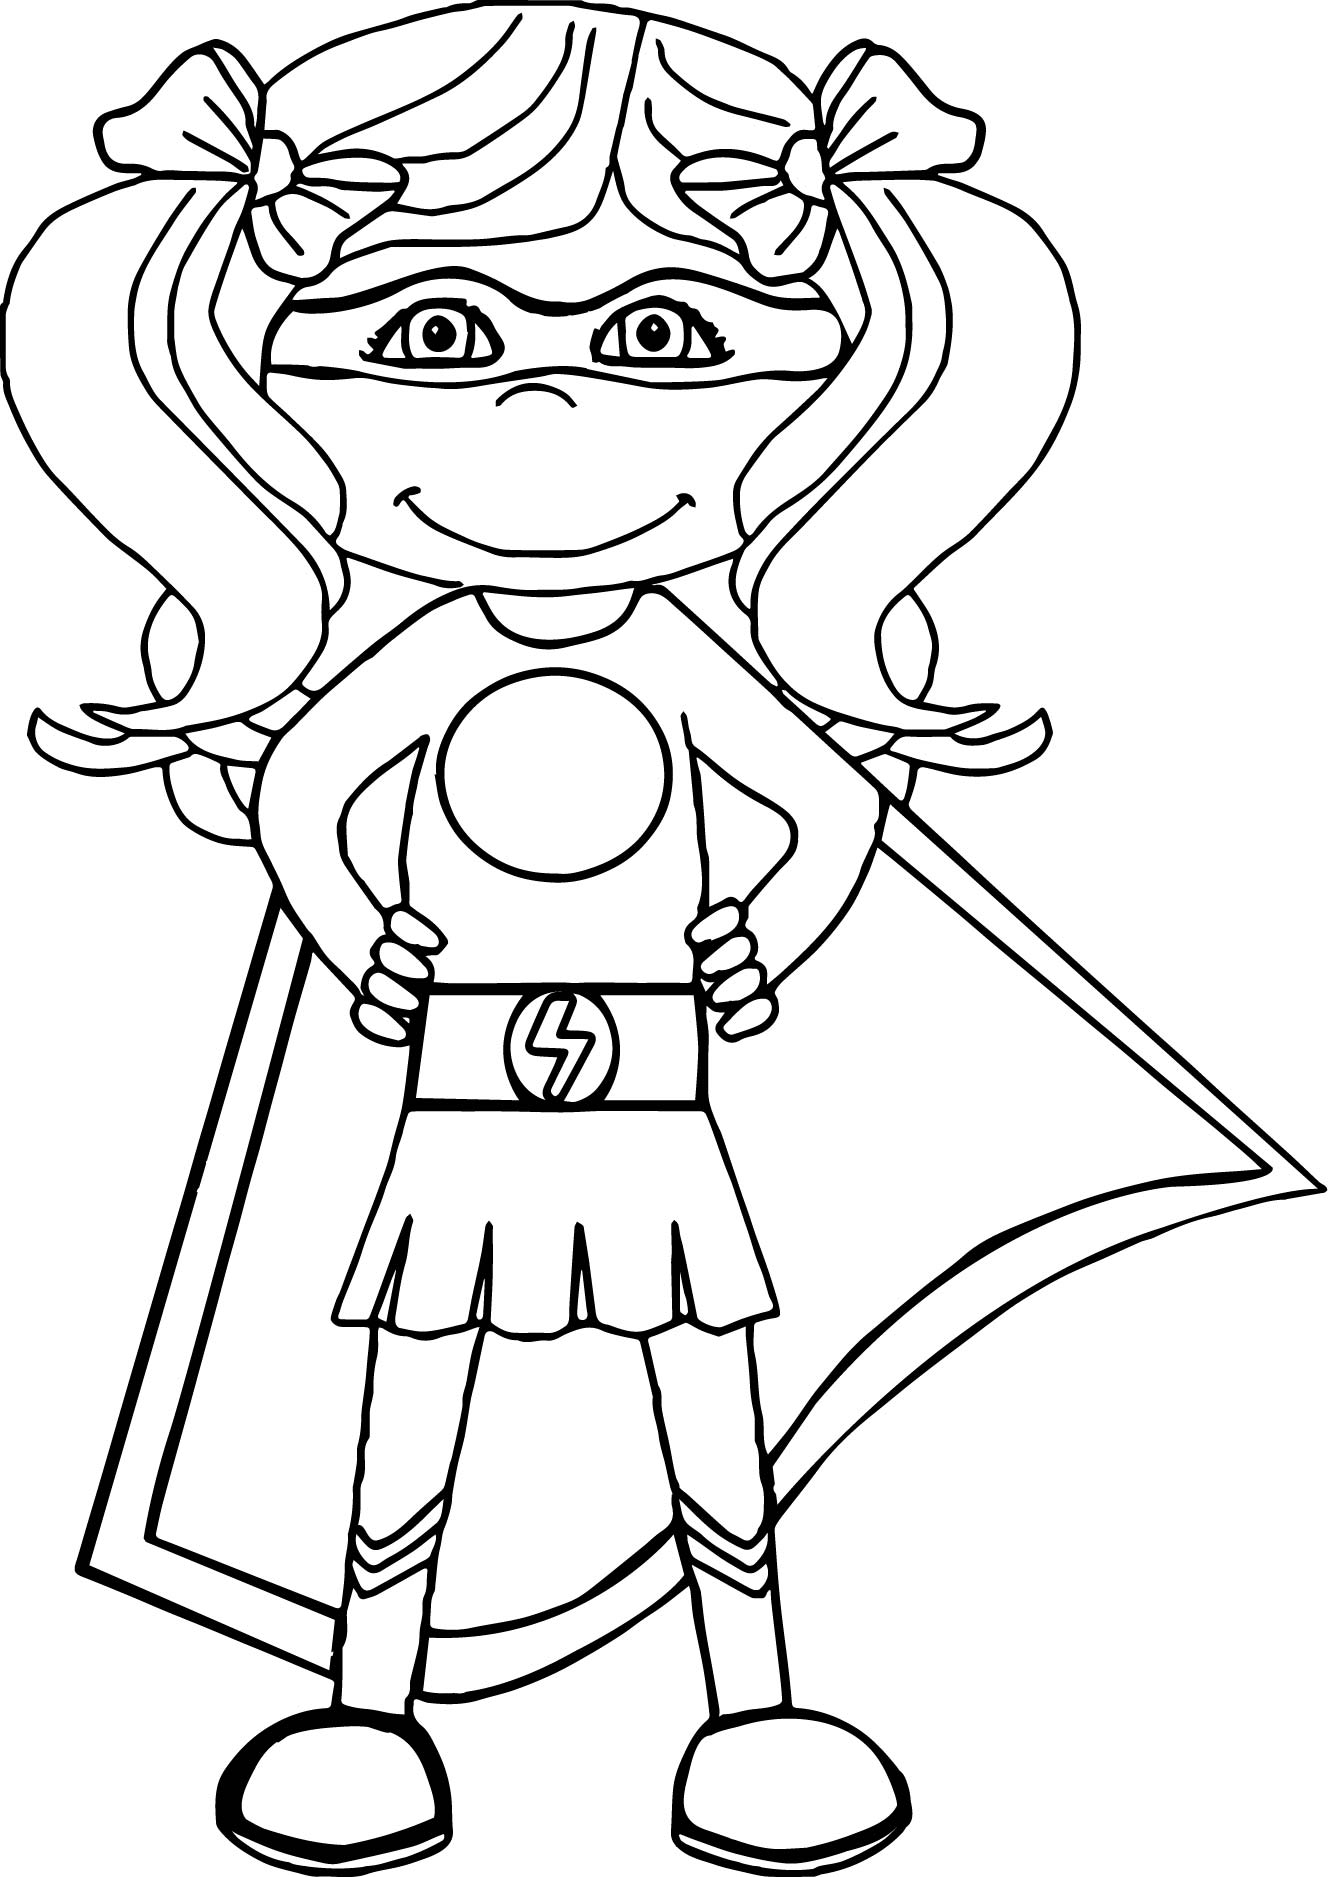 Deadpool Girl Cartoon Coloring Page